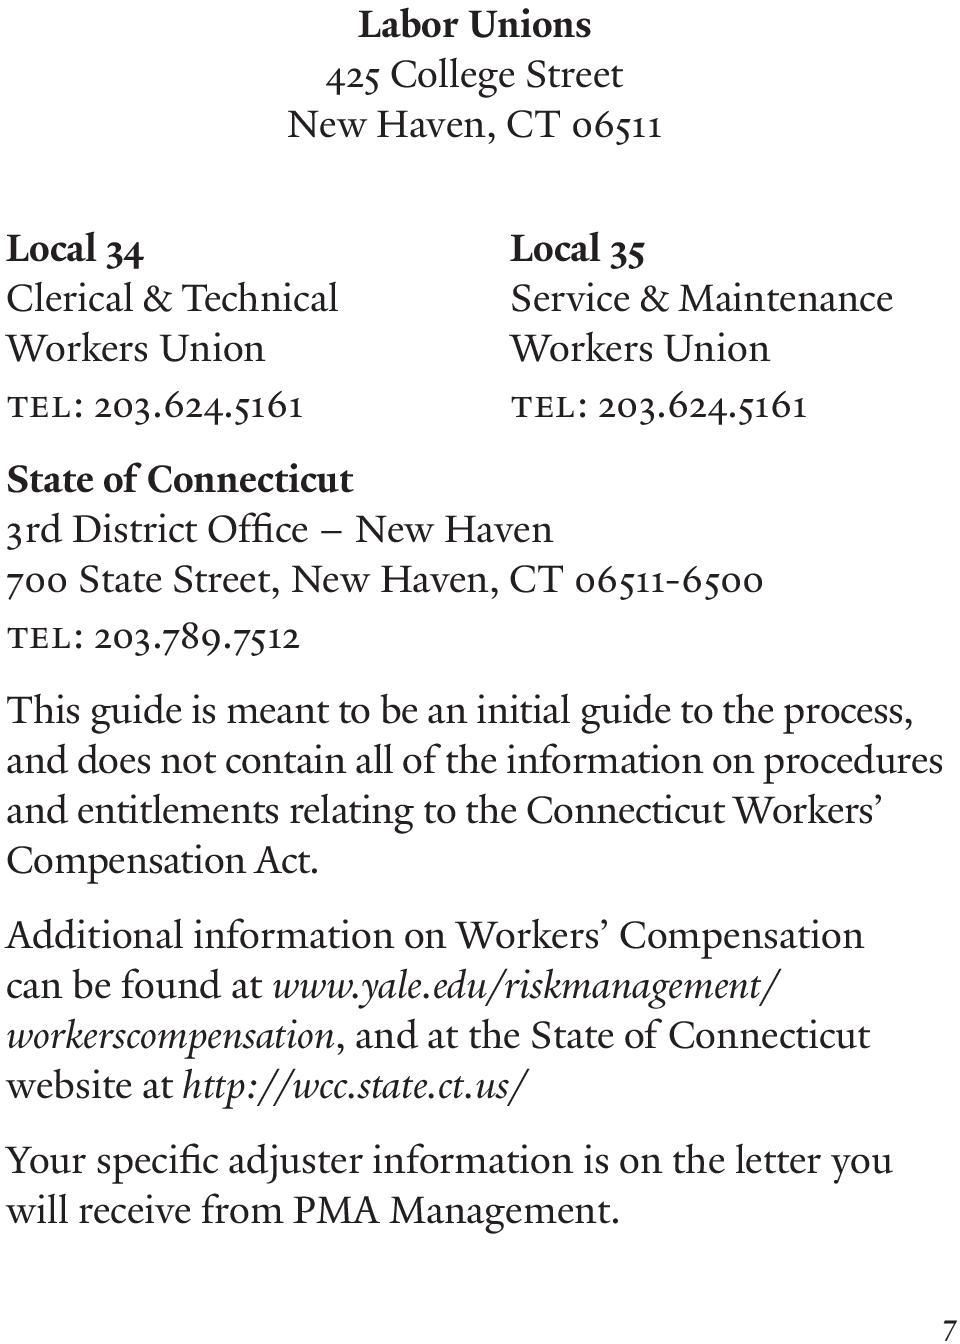 7512 This guide is meant to be an initial guide to the process, and does not contain all of the information on procedures and entitlements relating to the Connecticut Workers